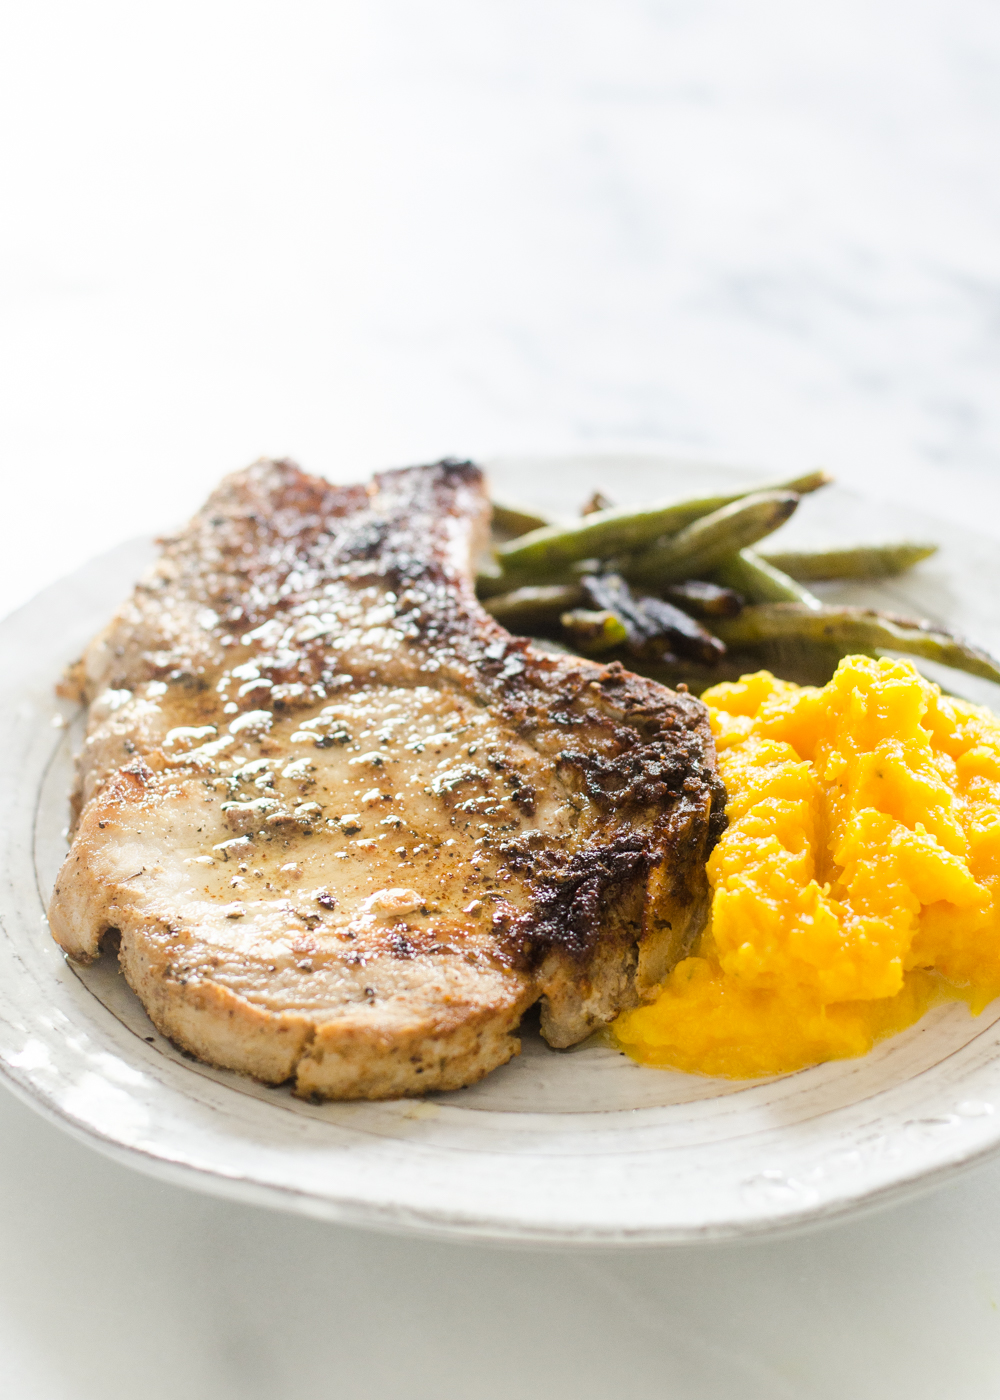 Butcher Box Review Meal 4 - Porkchops + Mashed Butternut Squash + Garlic Green Beans 2